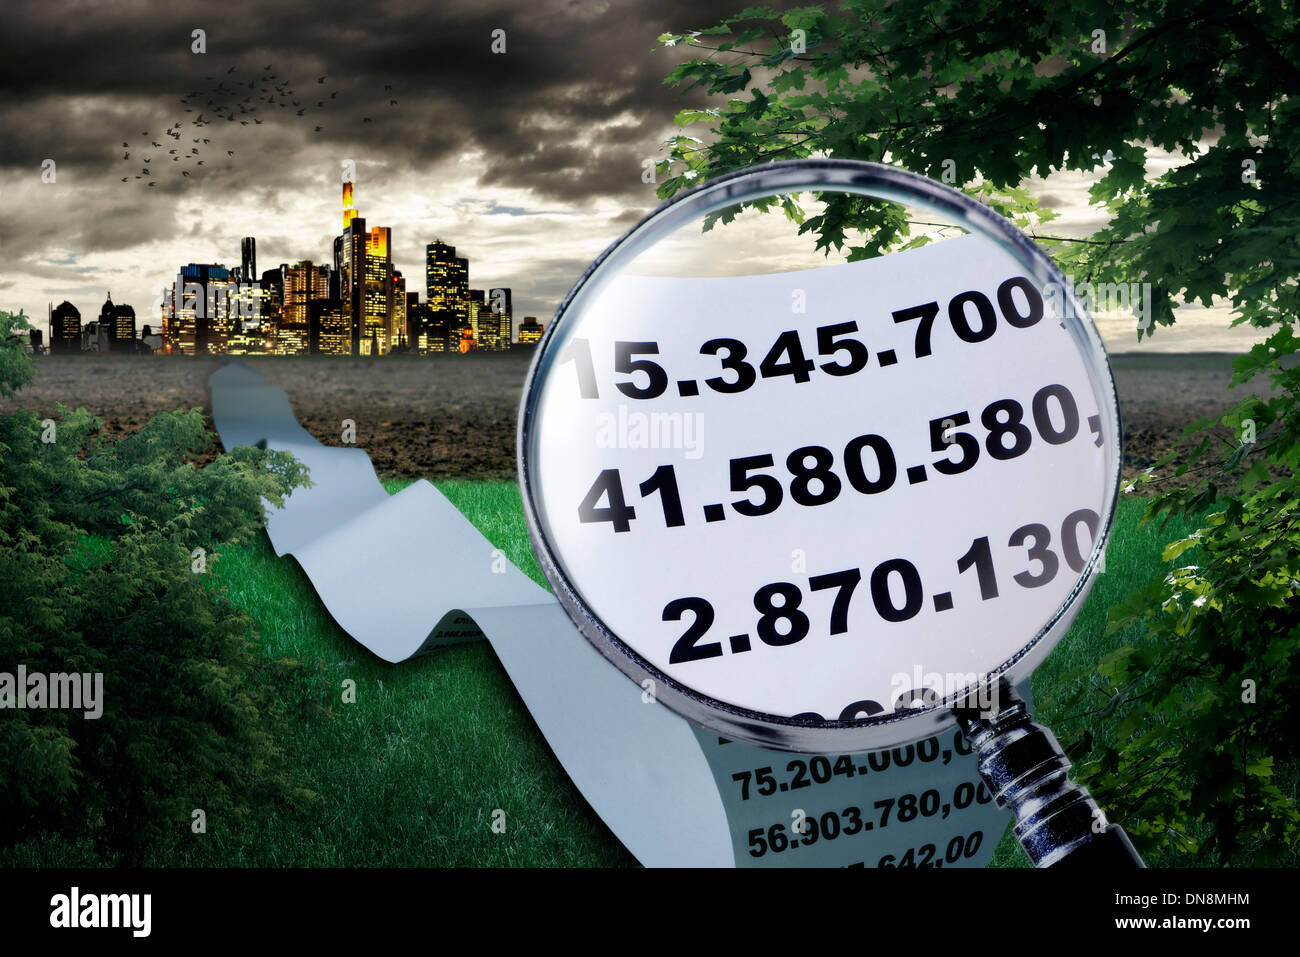 Magnifier shows the enlargement of high sums. In the background a large city can be seen. - Stock Image